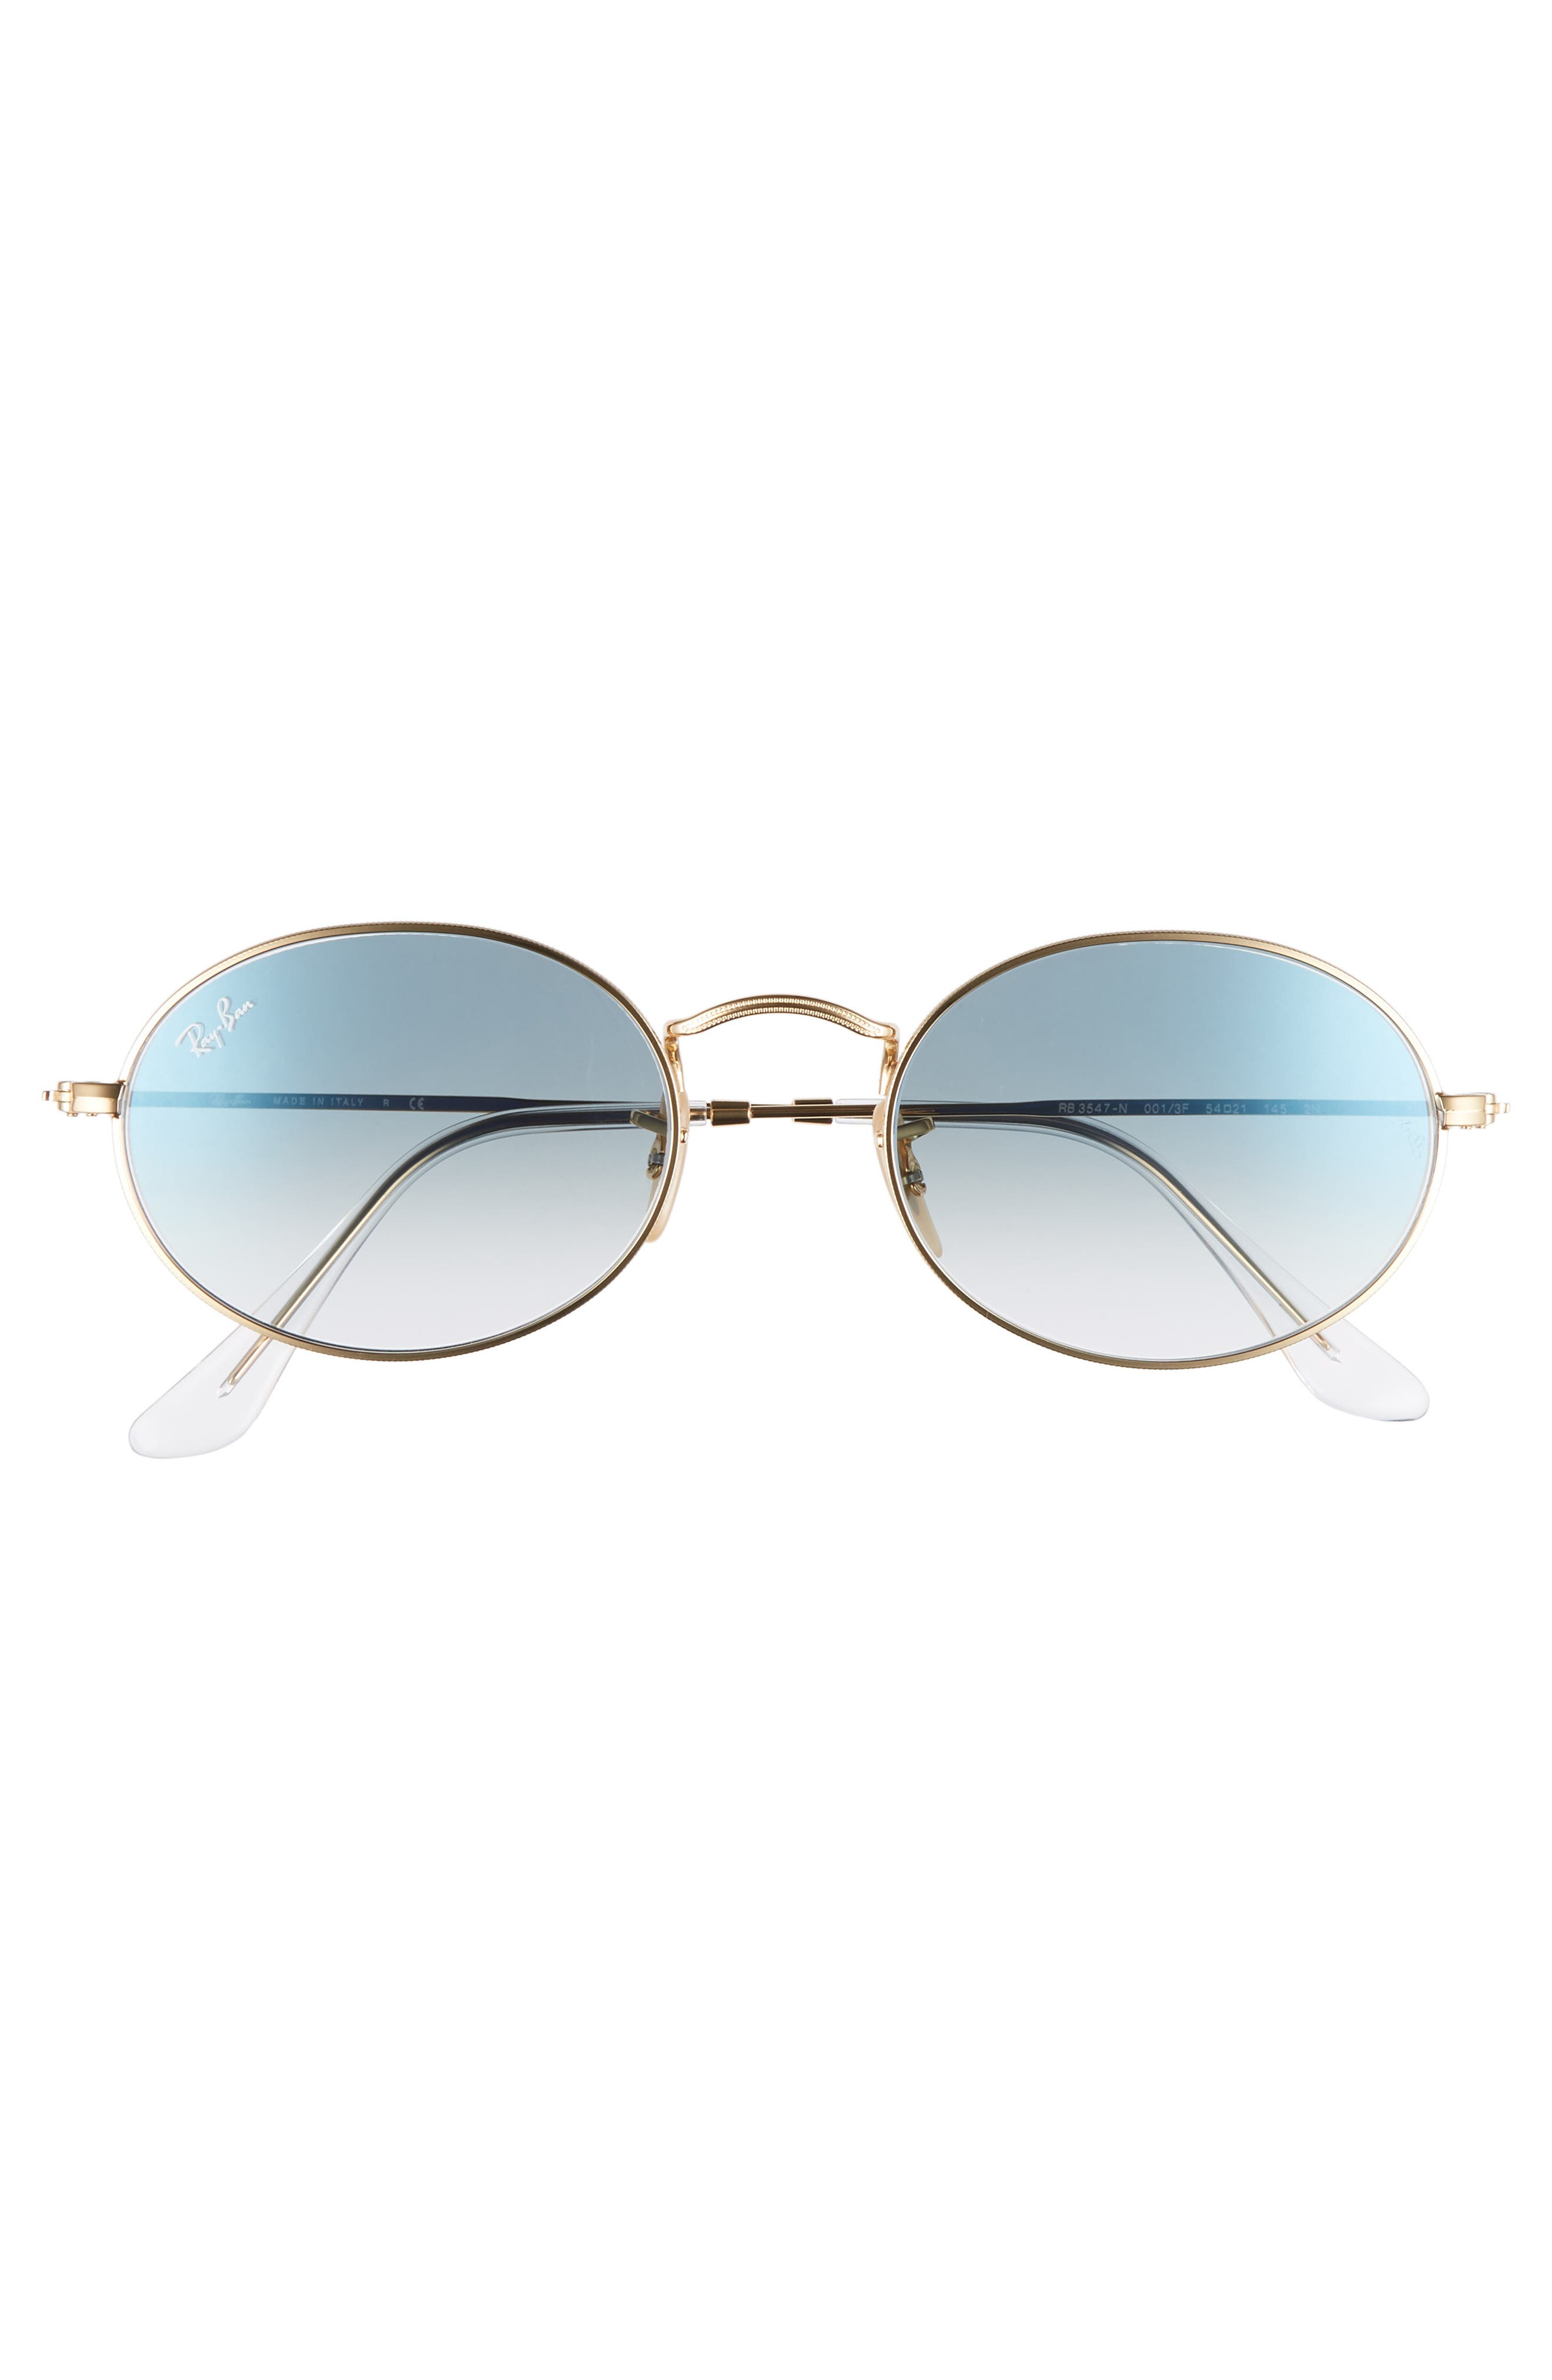 54mm Oval Sunglasses,                             Alternate thumbnail 3, color,                             Gold